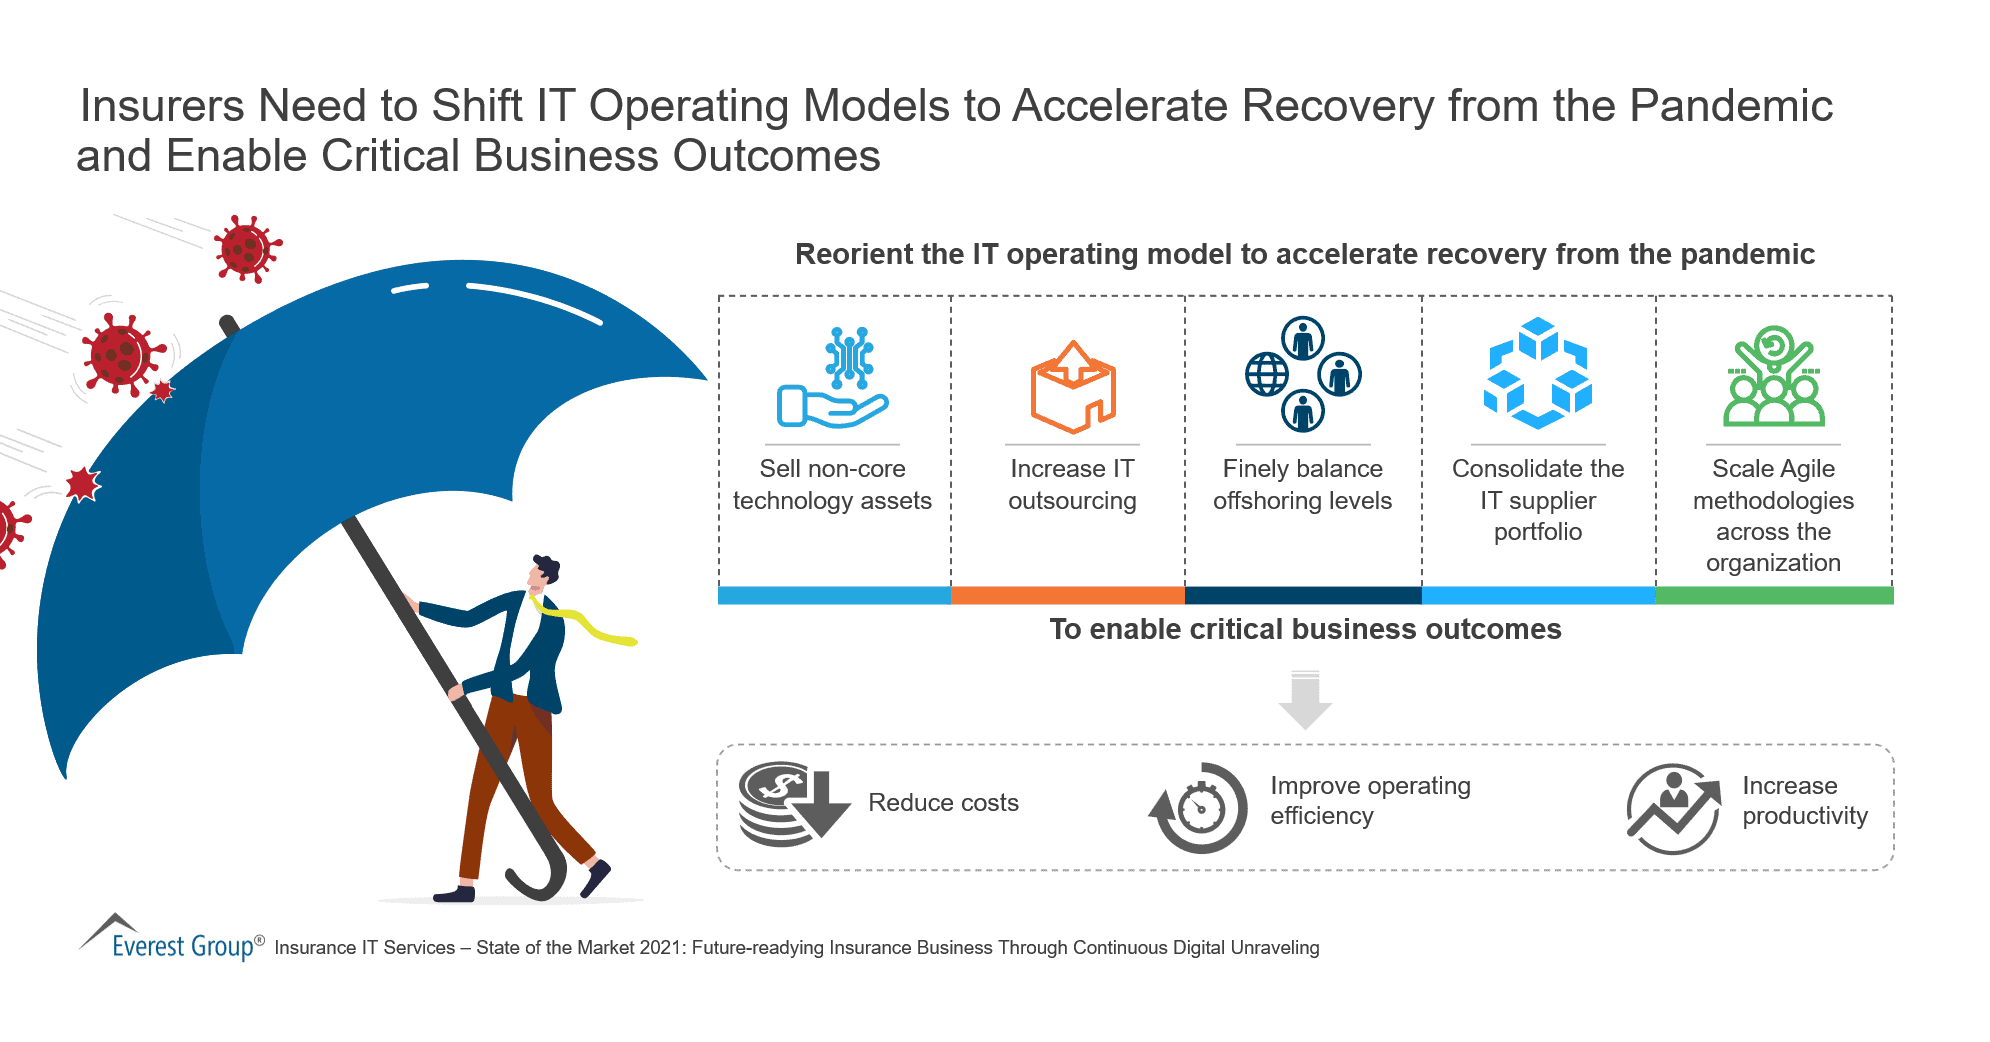 Insurers Need to Shift IT Operating Models to Accelerate Recovery from the Pandemic